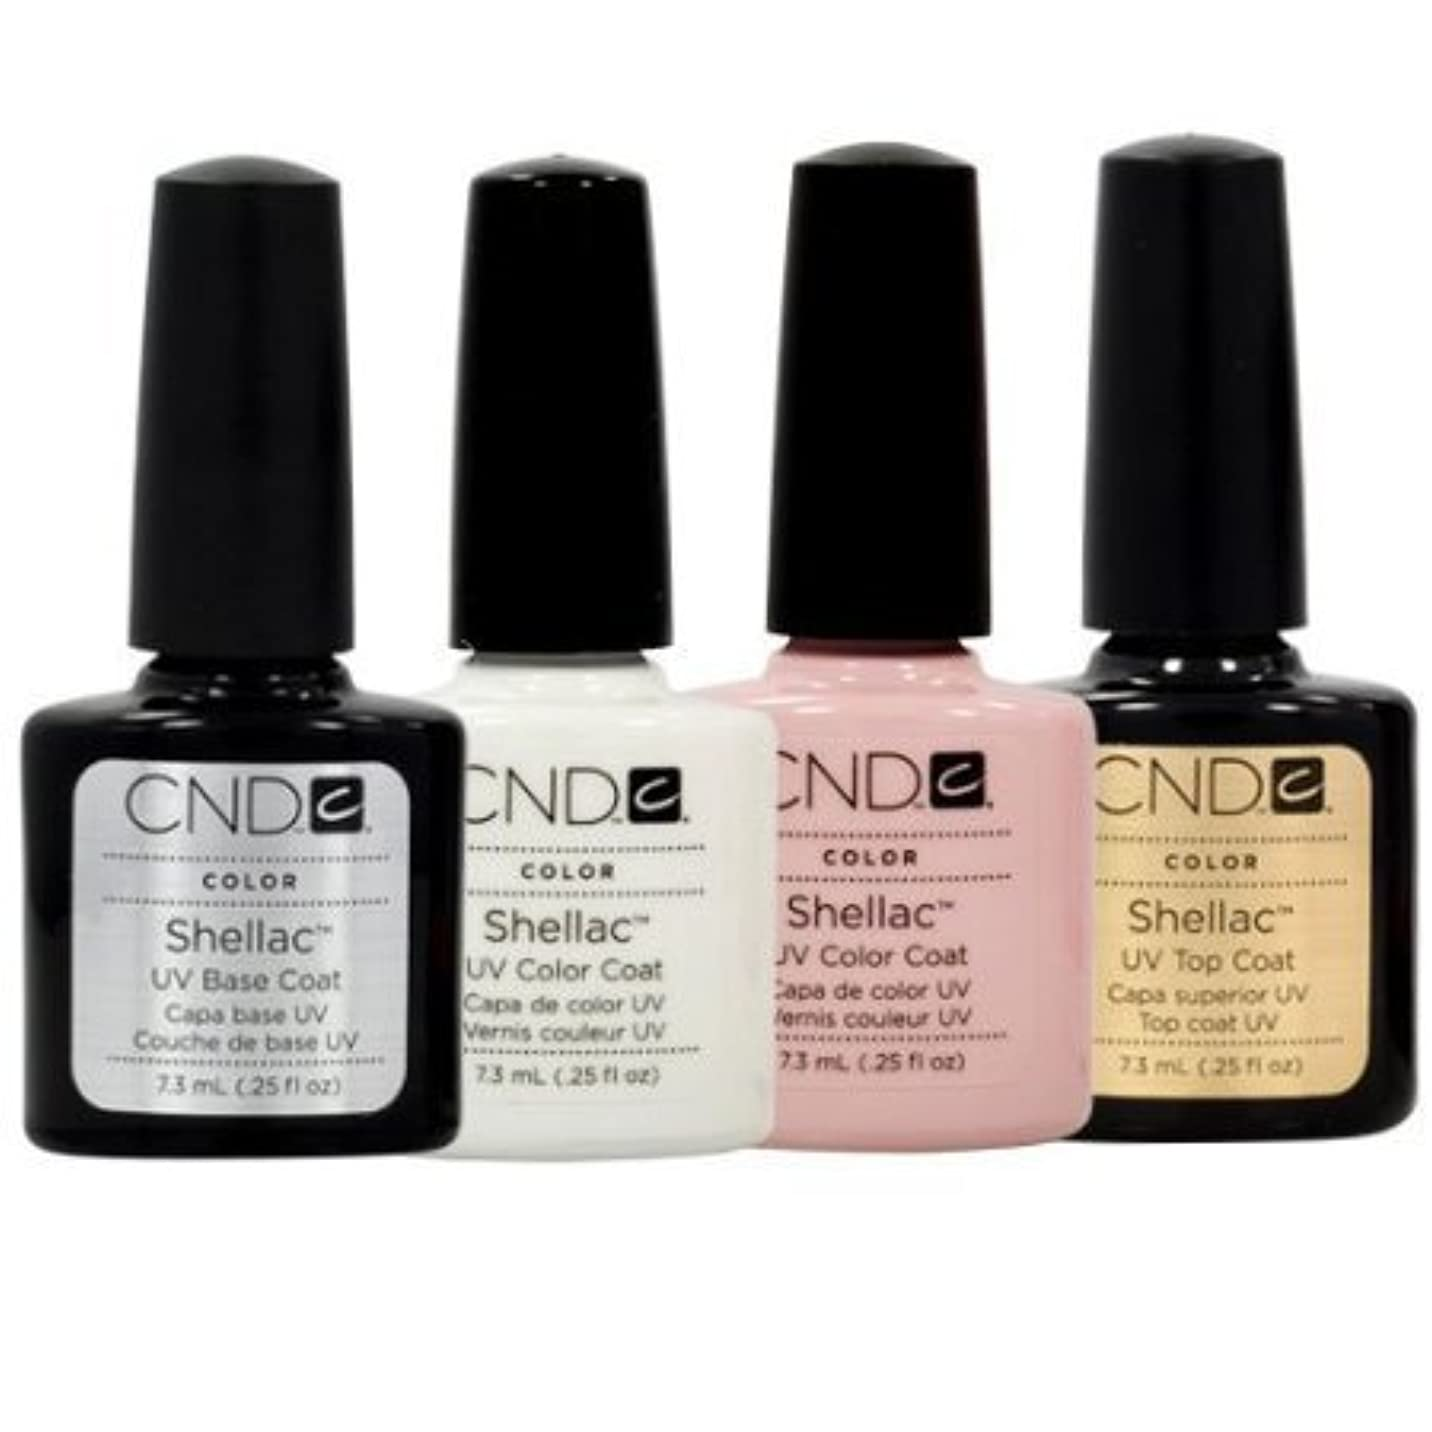 シットコム分岐する予報CND Shellac French Manicure Kit Base Top Coat Color White Pink Nail Polish Gel by CND - Creative Nail Design [並行輸入品]